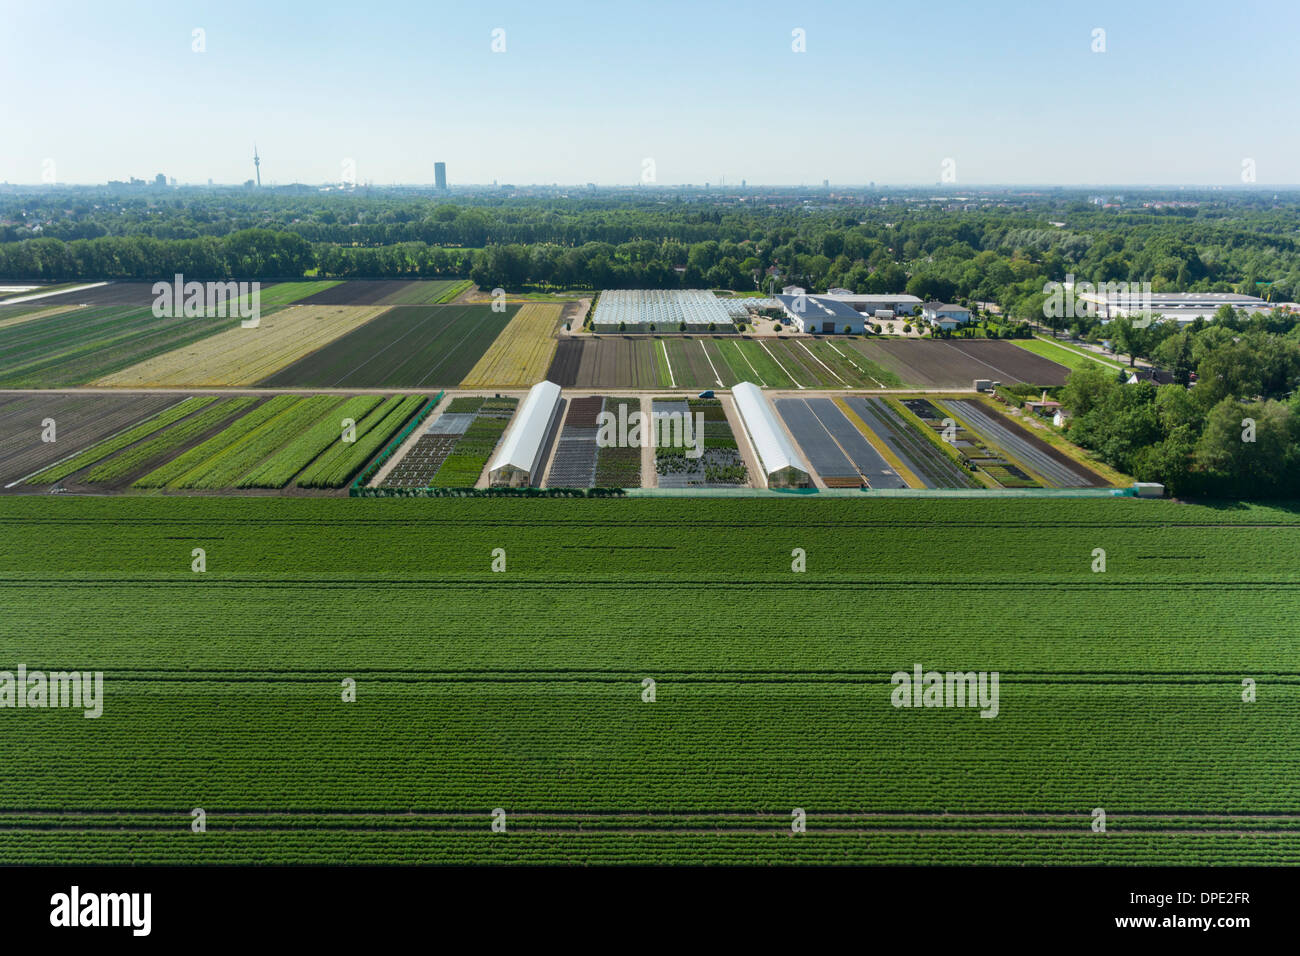 View of agriculture and greenhouses, Munich, Bavaria, Germany - Stock Image